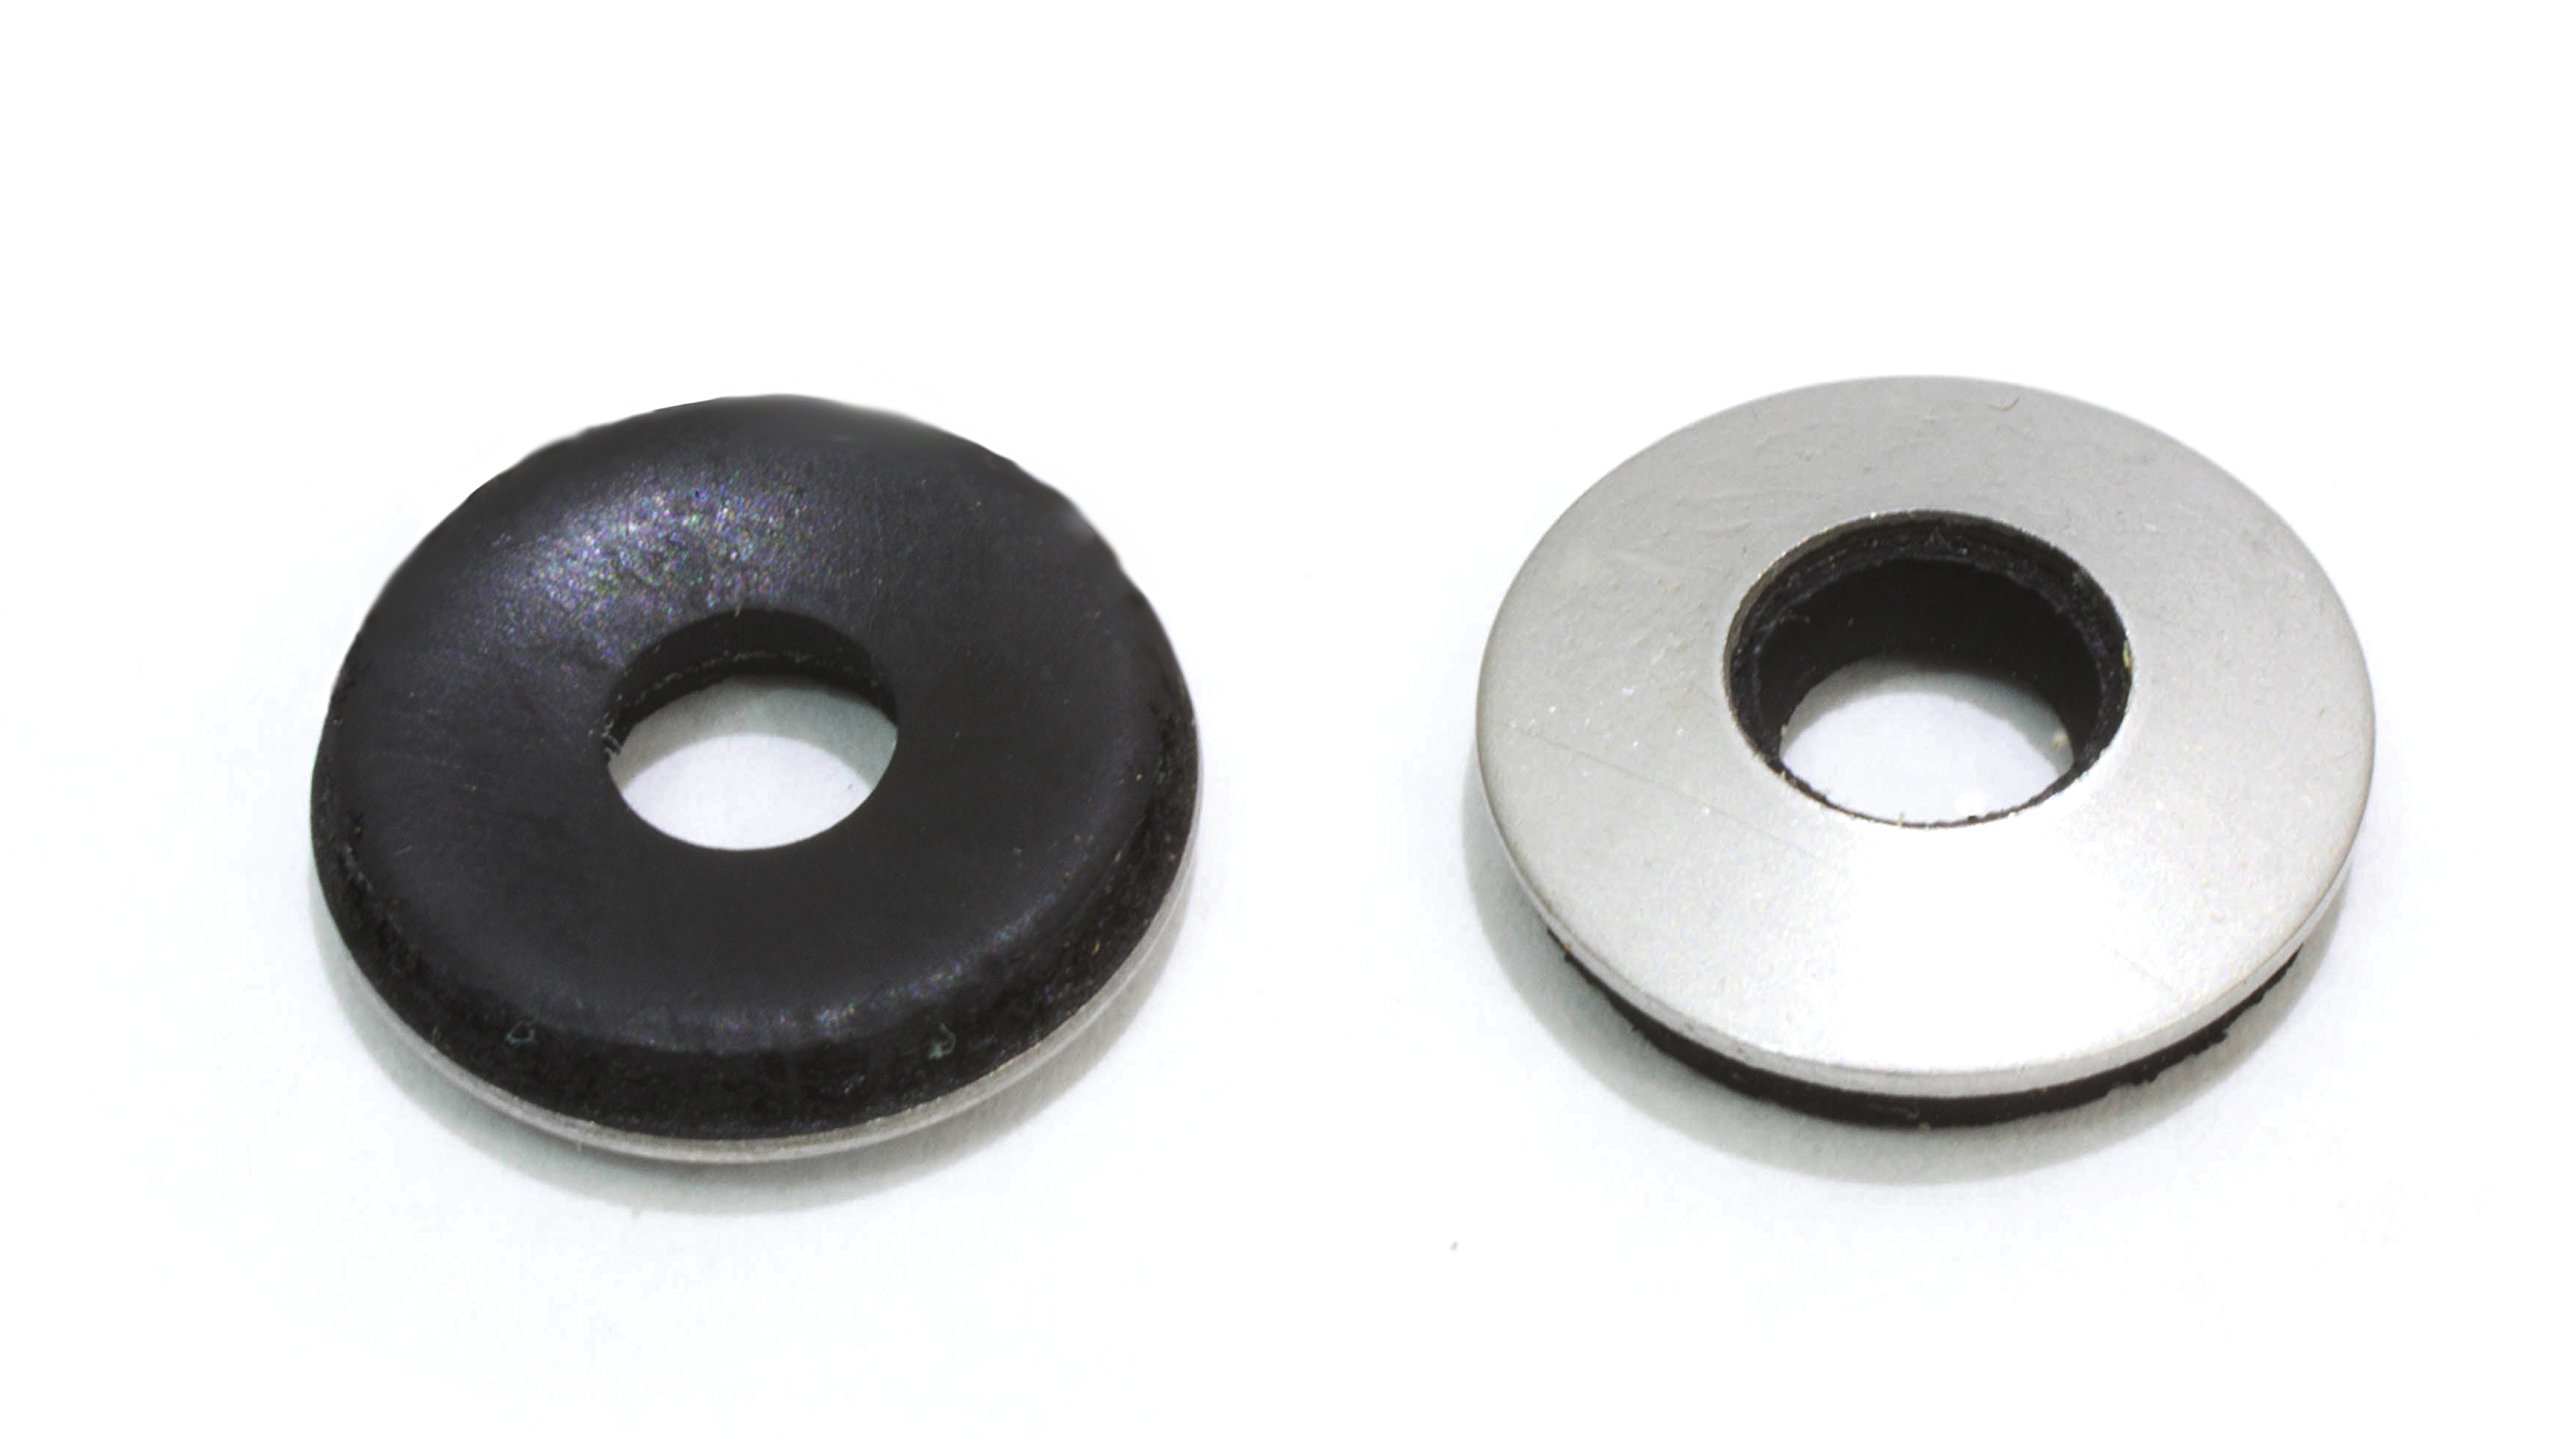 1/4'' x 5/8'' OD Stainless EPDM Washers, (100 pc) Neoprene Backed, Choose Size & QTY, By Bolt Dropper.